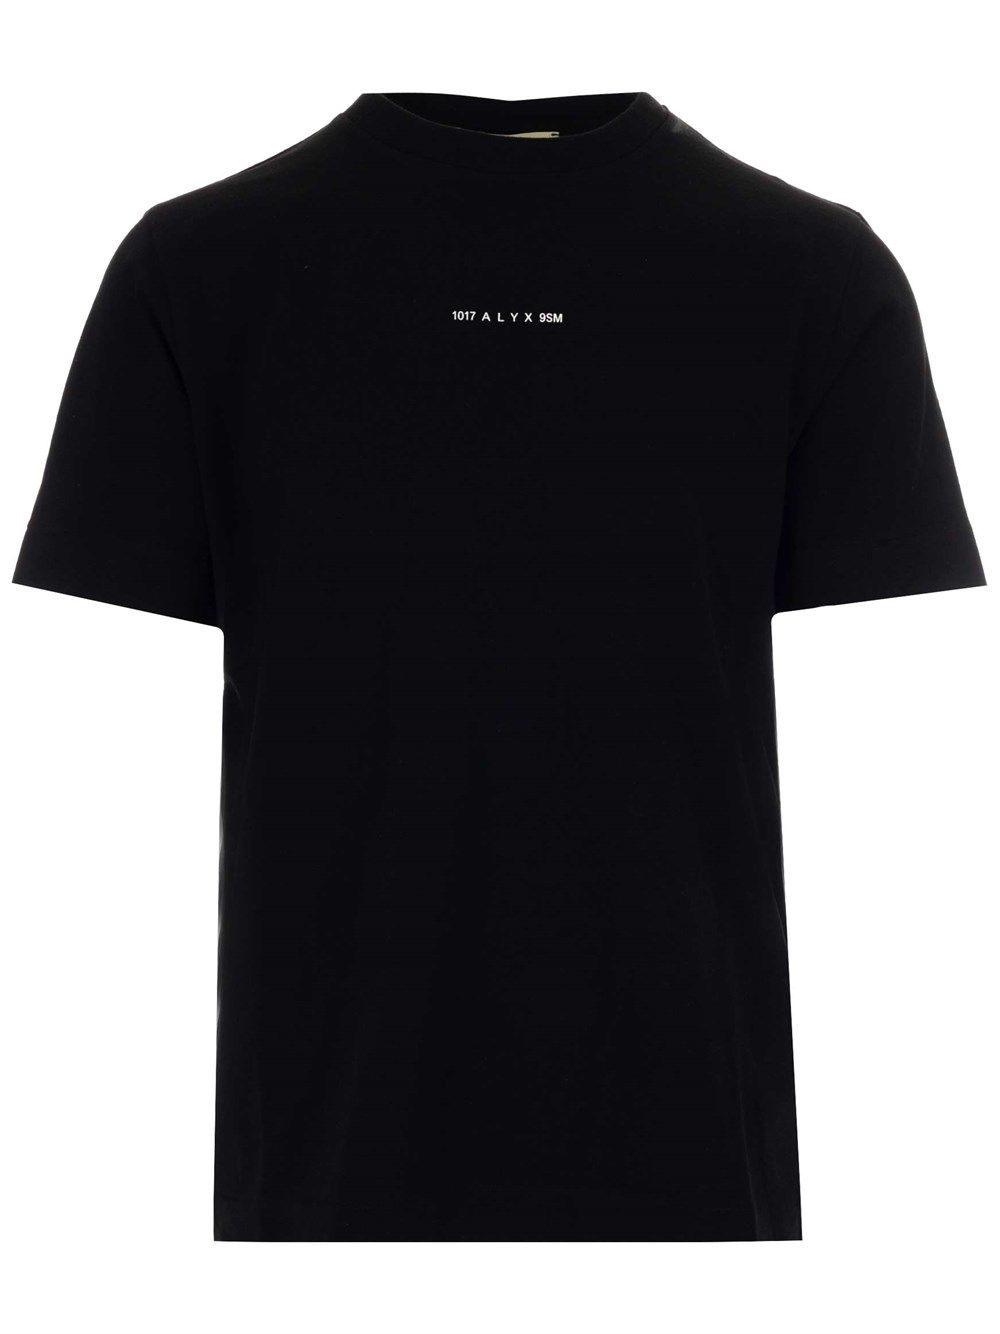 Alyx ALYX MEN'S BLACK OTHER MATERIALS T-SHIRT